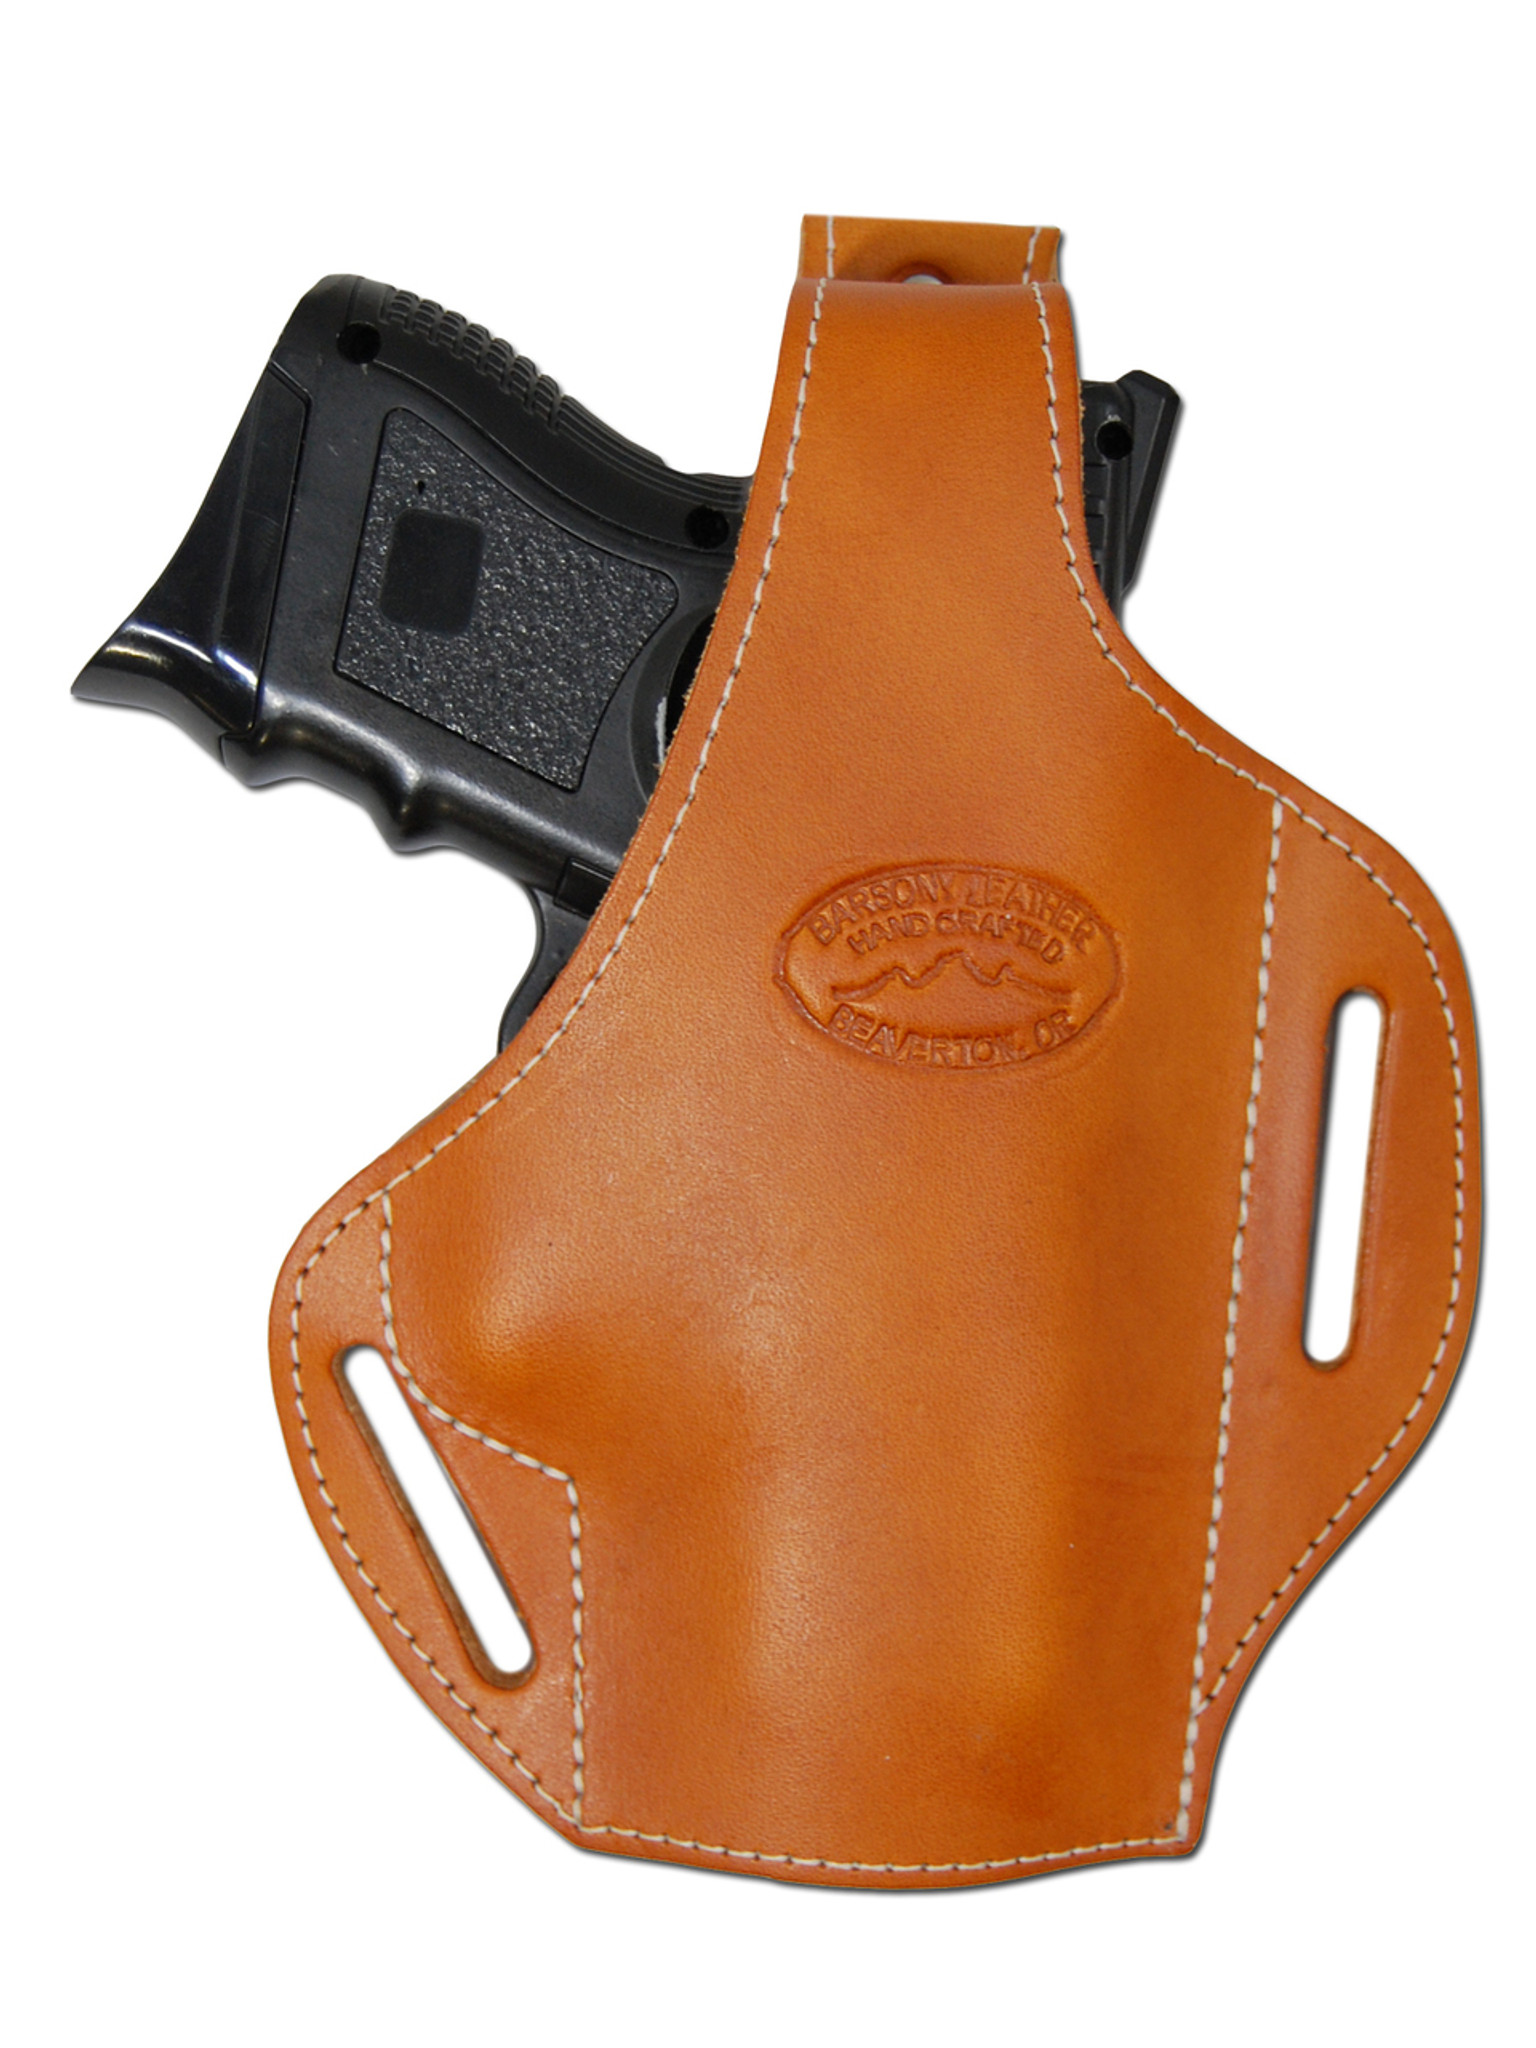 Saddle Tan Leather Pancake Holster for Compact Sub-Compact